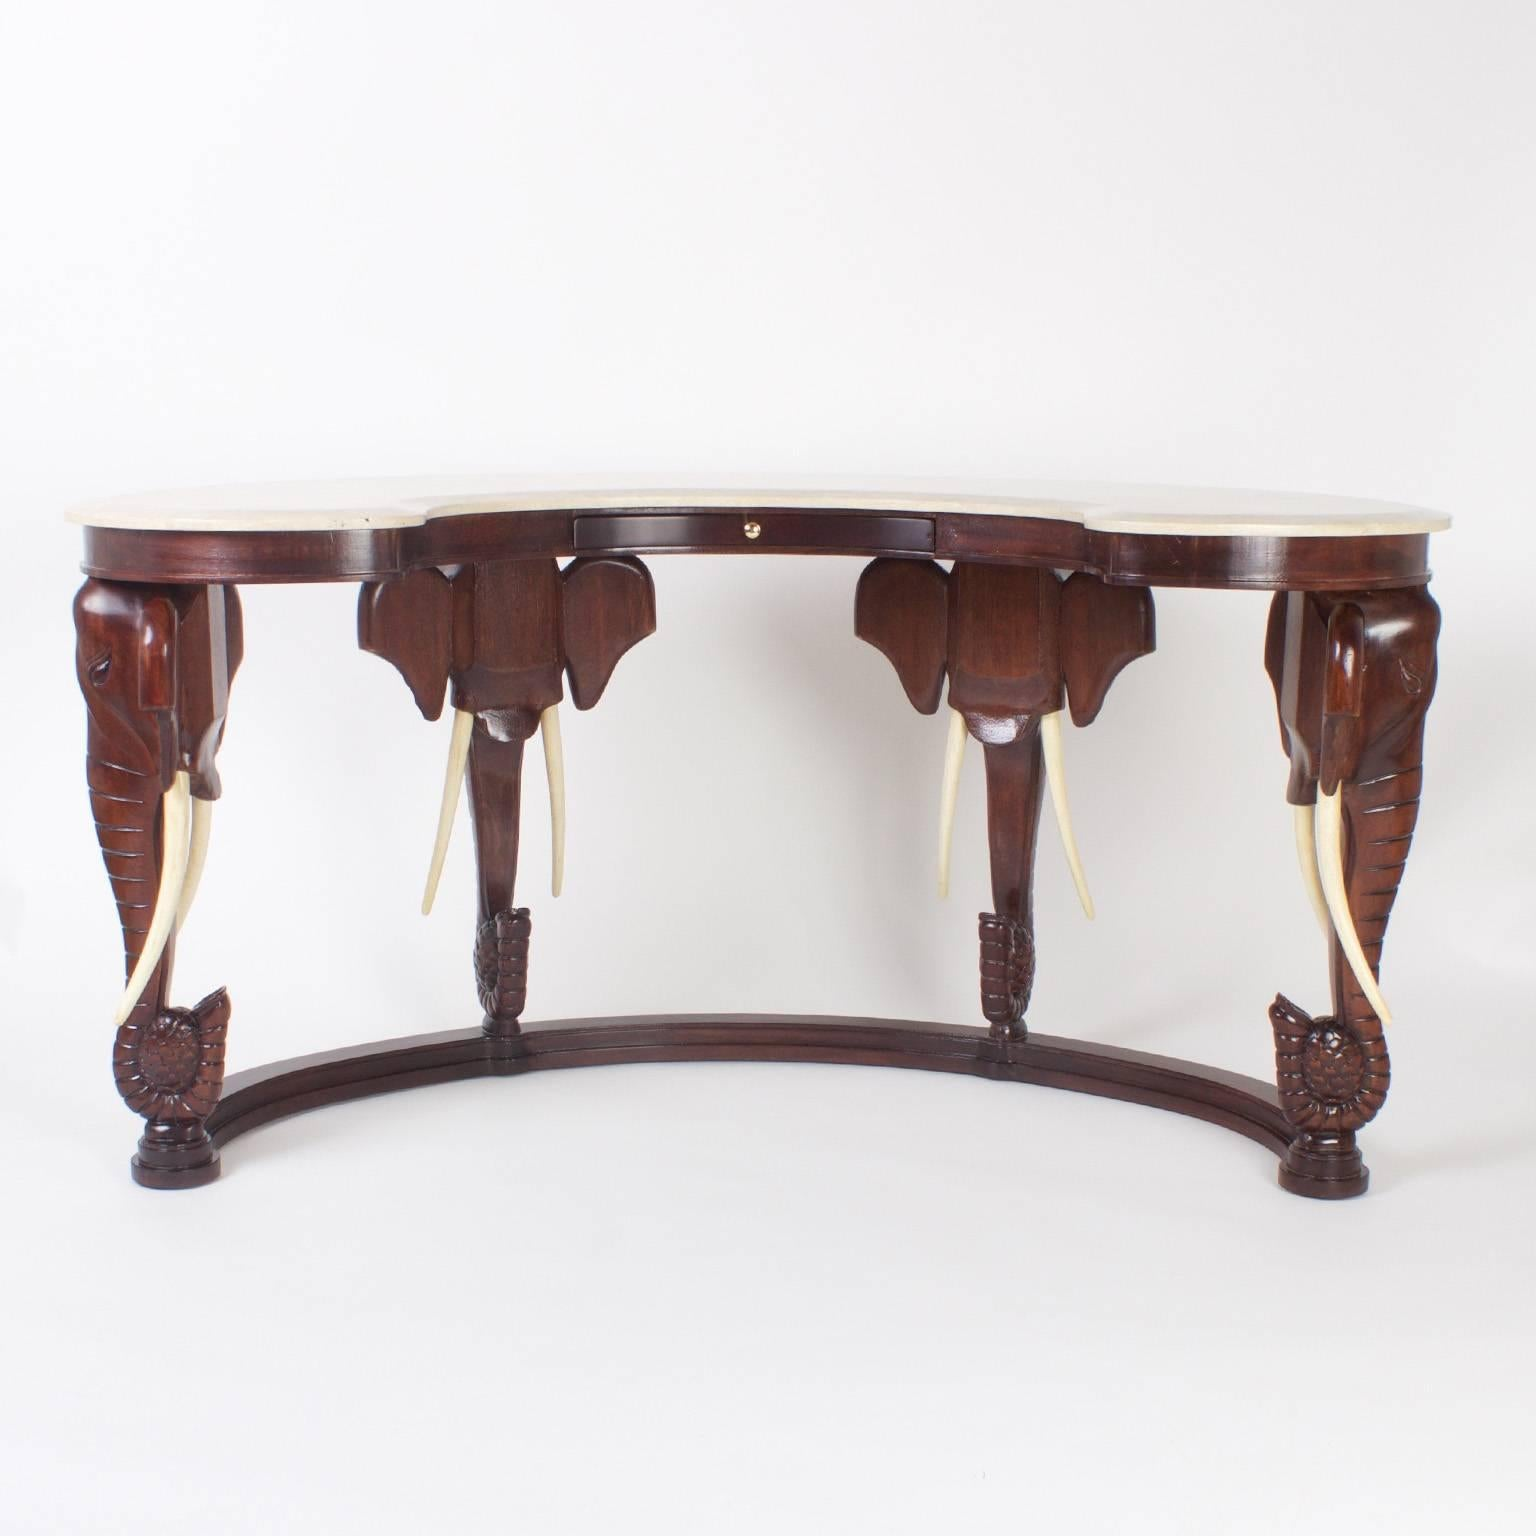 Charmant Mid Century Mahogany Maitland Smith Desk With Elephant Motif